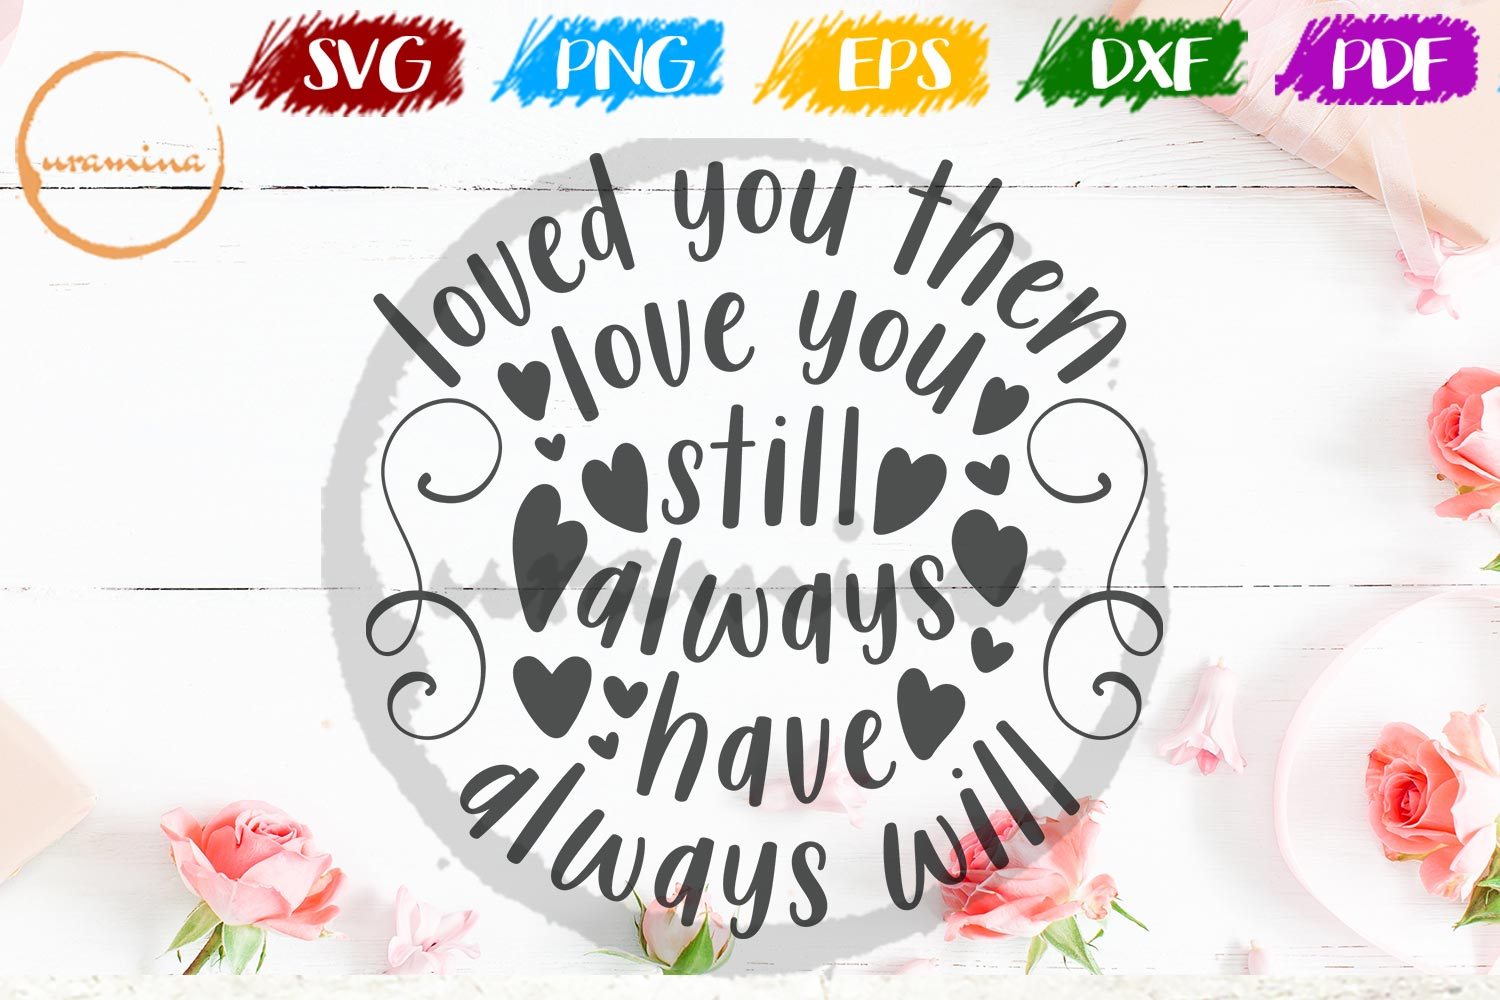 Download Free Loved You Then Love You Still Always Graphic By Uramina for Cricut Explore, Silhouette and other cutting machines.